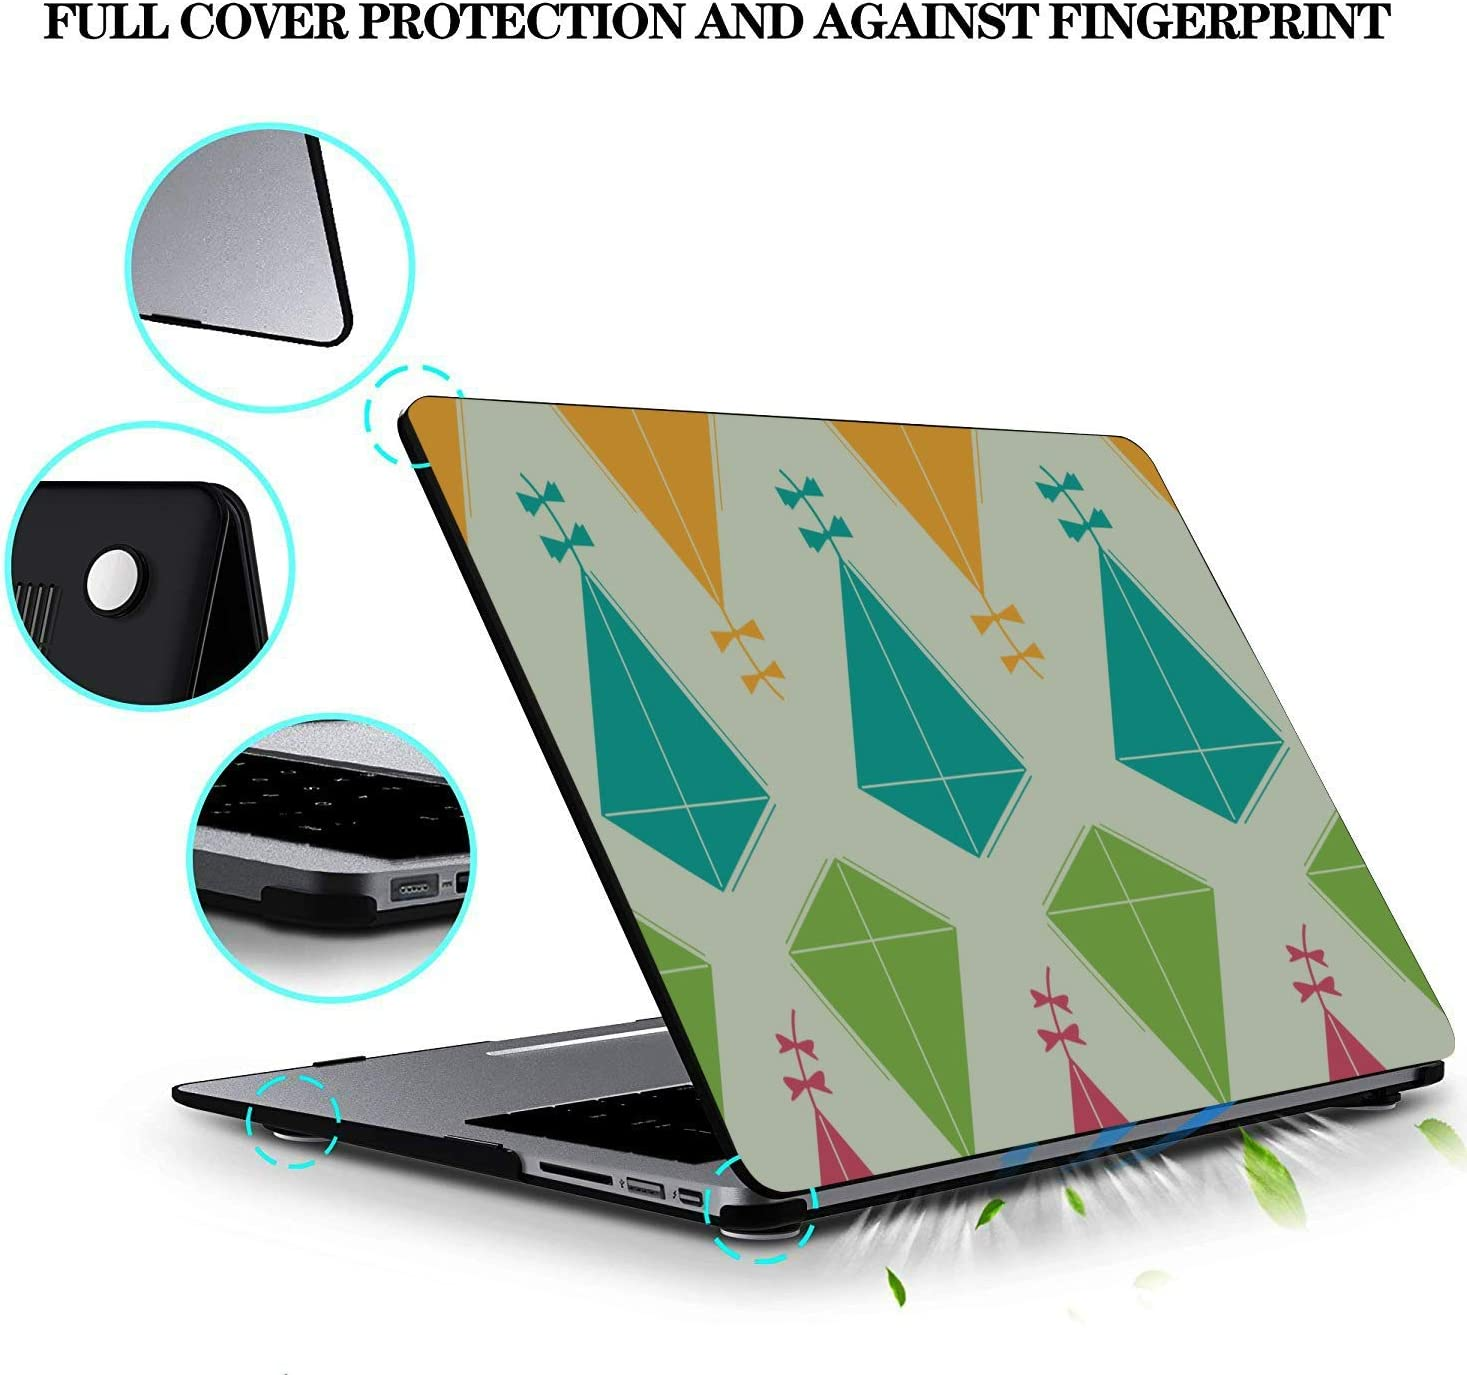 MacBook Air Hard Cover Spring Children Play Game Toy Kite Plastic Hard Shell Compatible Mac Air 11 Pro 13 15 MacBook Hard Case Protection for MacBook 2016-2019 Version